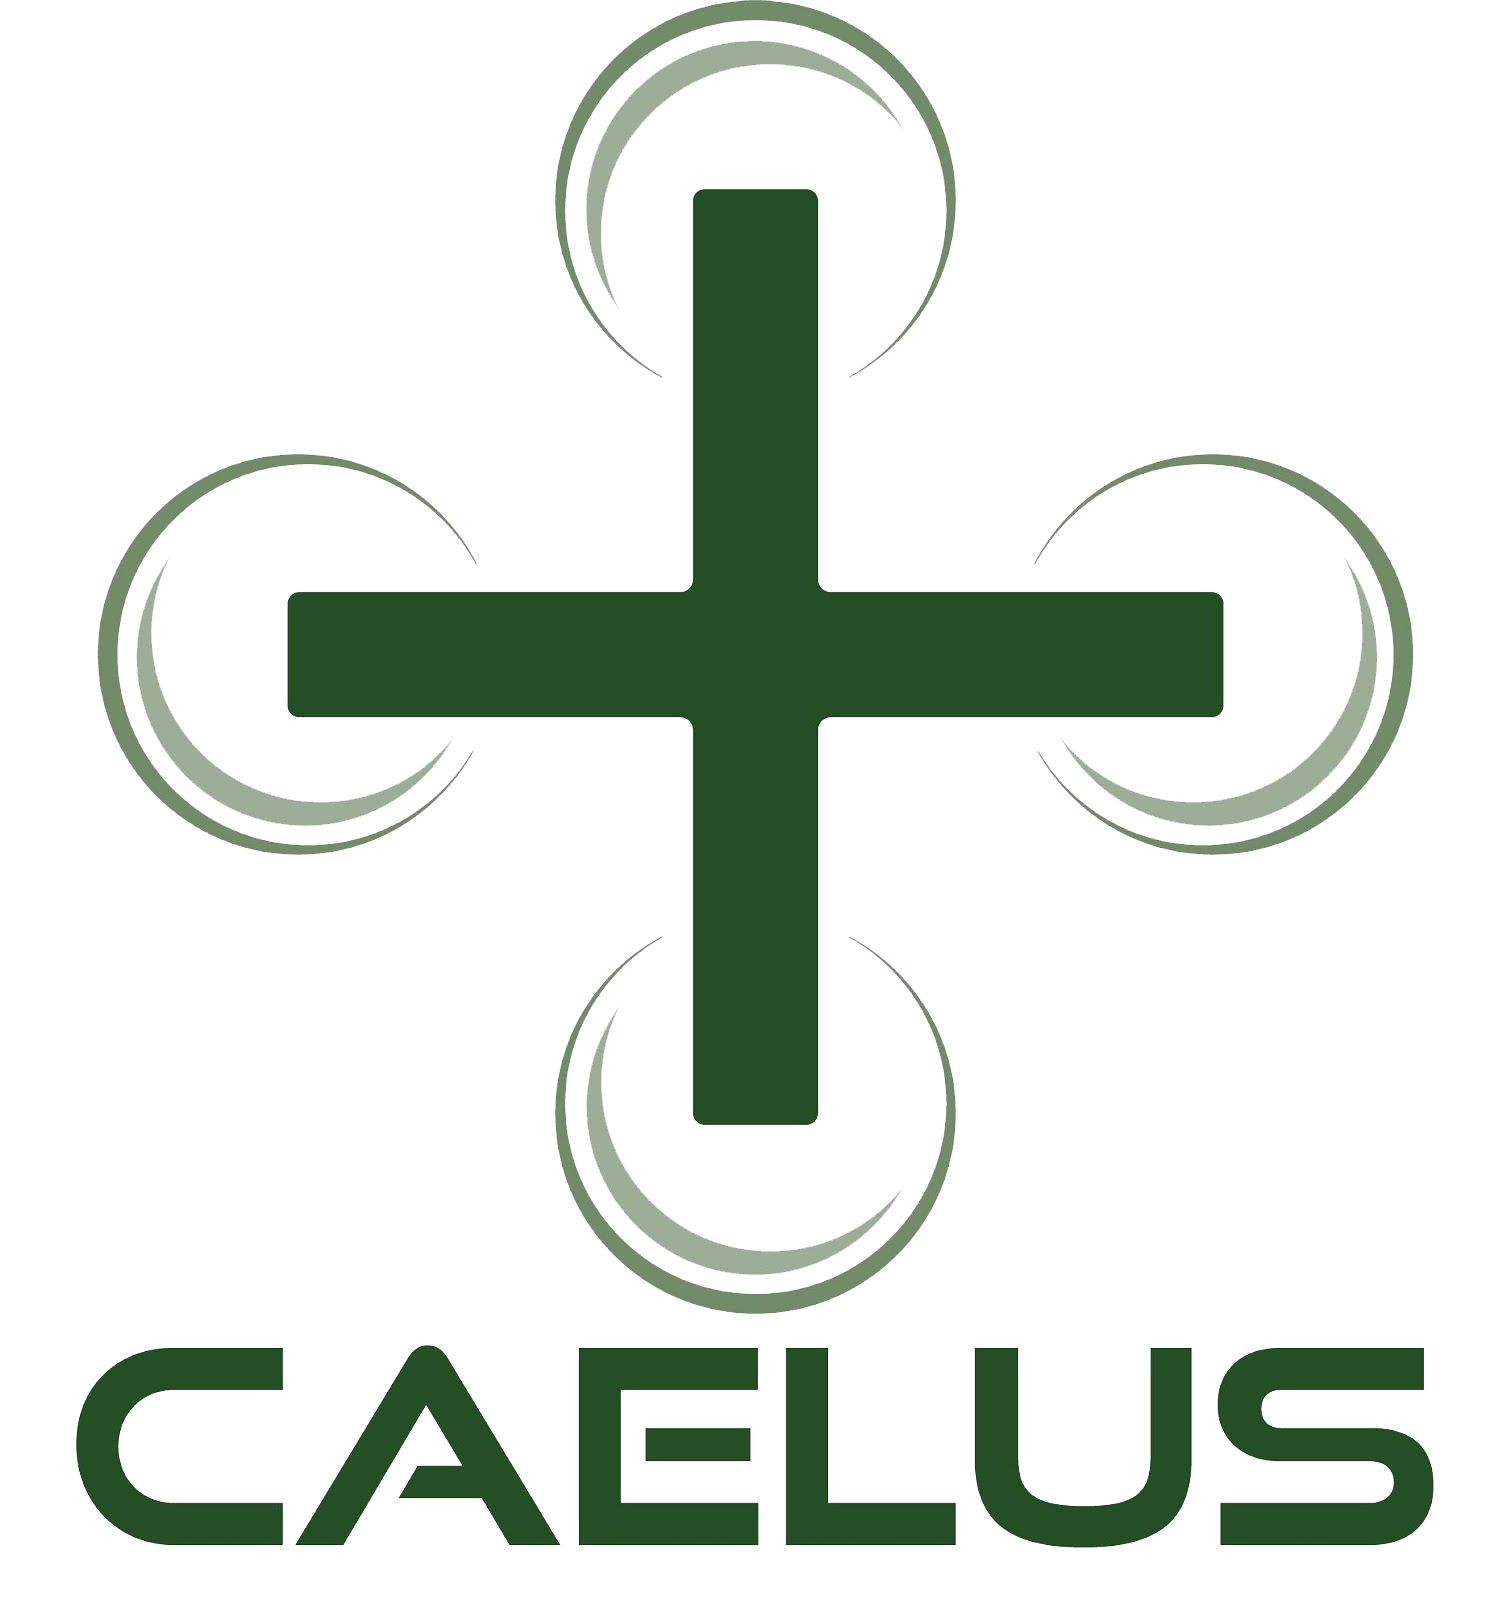 The CAELUS (Care & Equity – Healthcare Logistics UAS Scotland) project